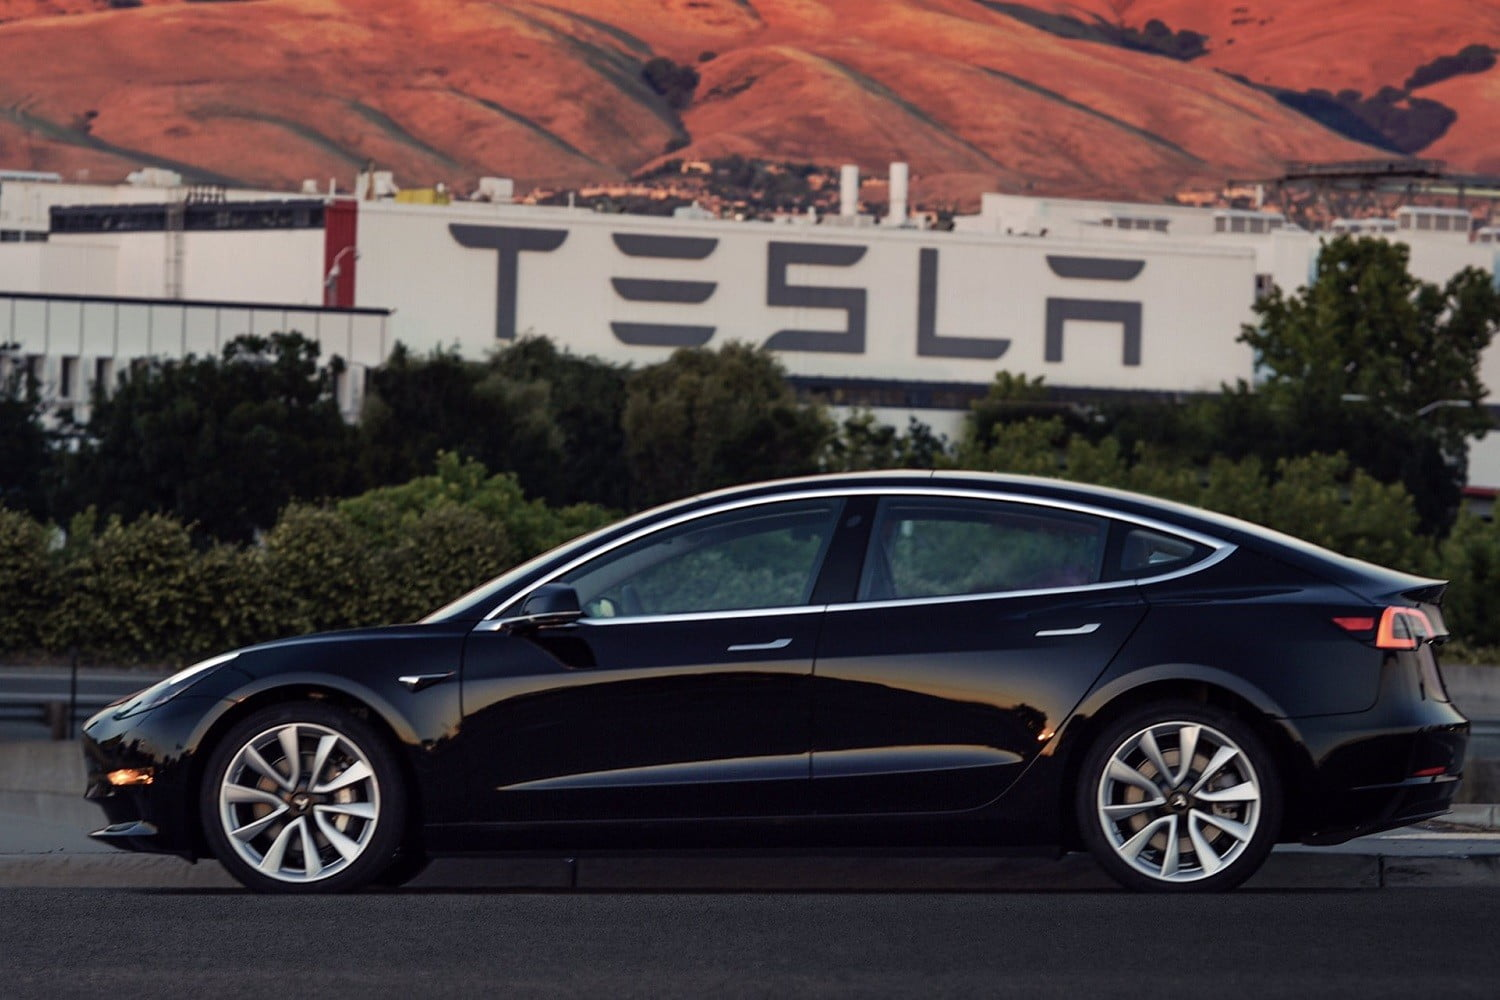 Tesla Model 3 Electric Car Price Reduced Again This Time By 1 100